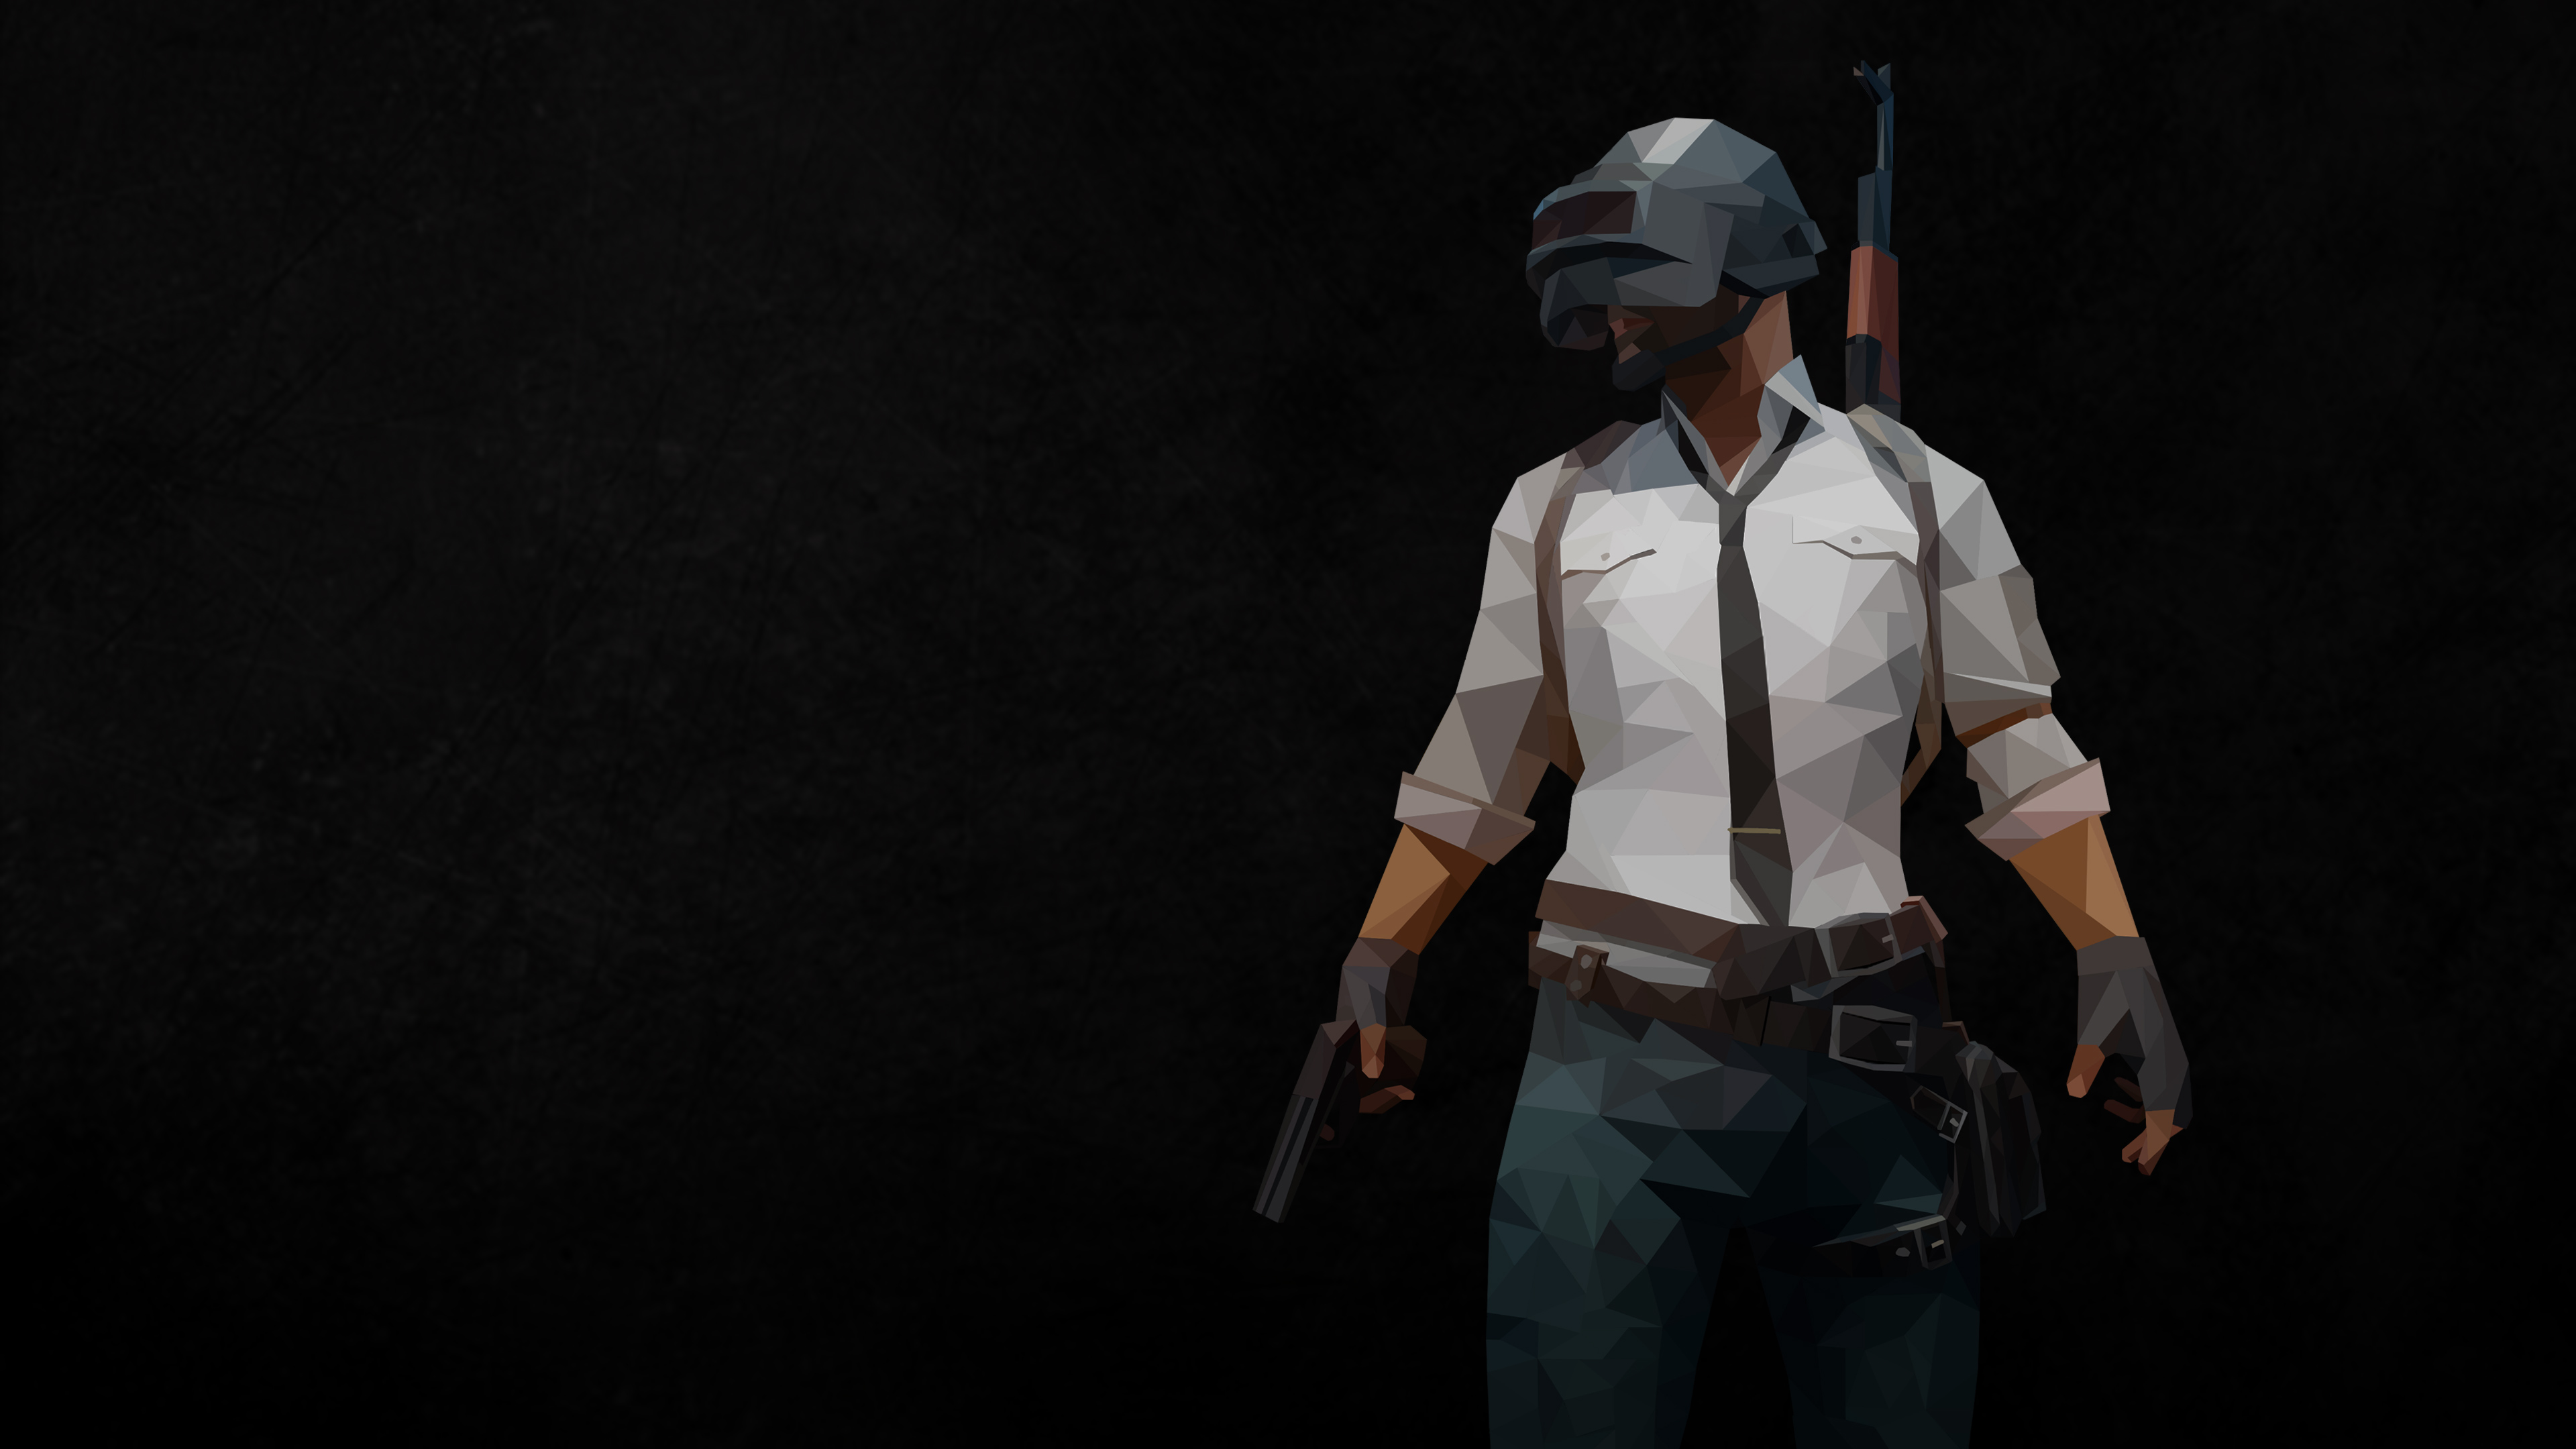 Download Best Pubg Wallpapers 4k For Pc